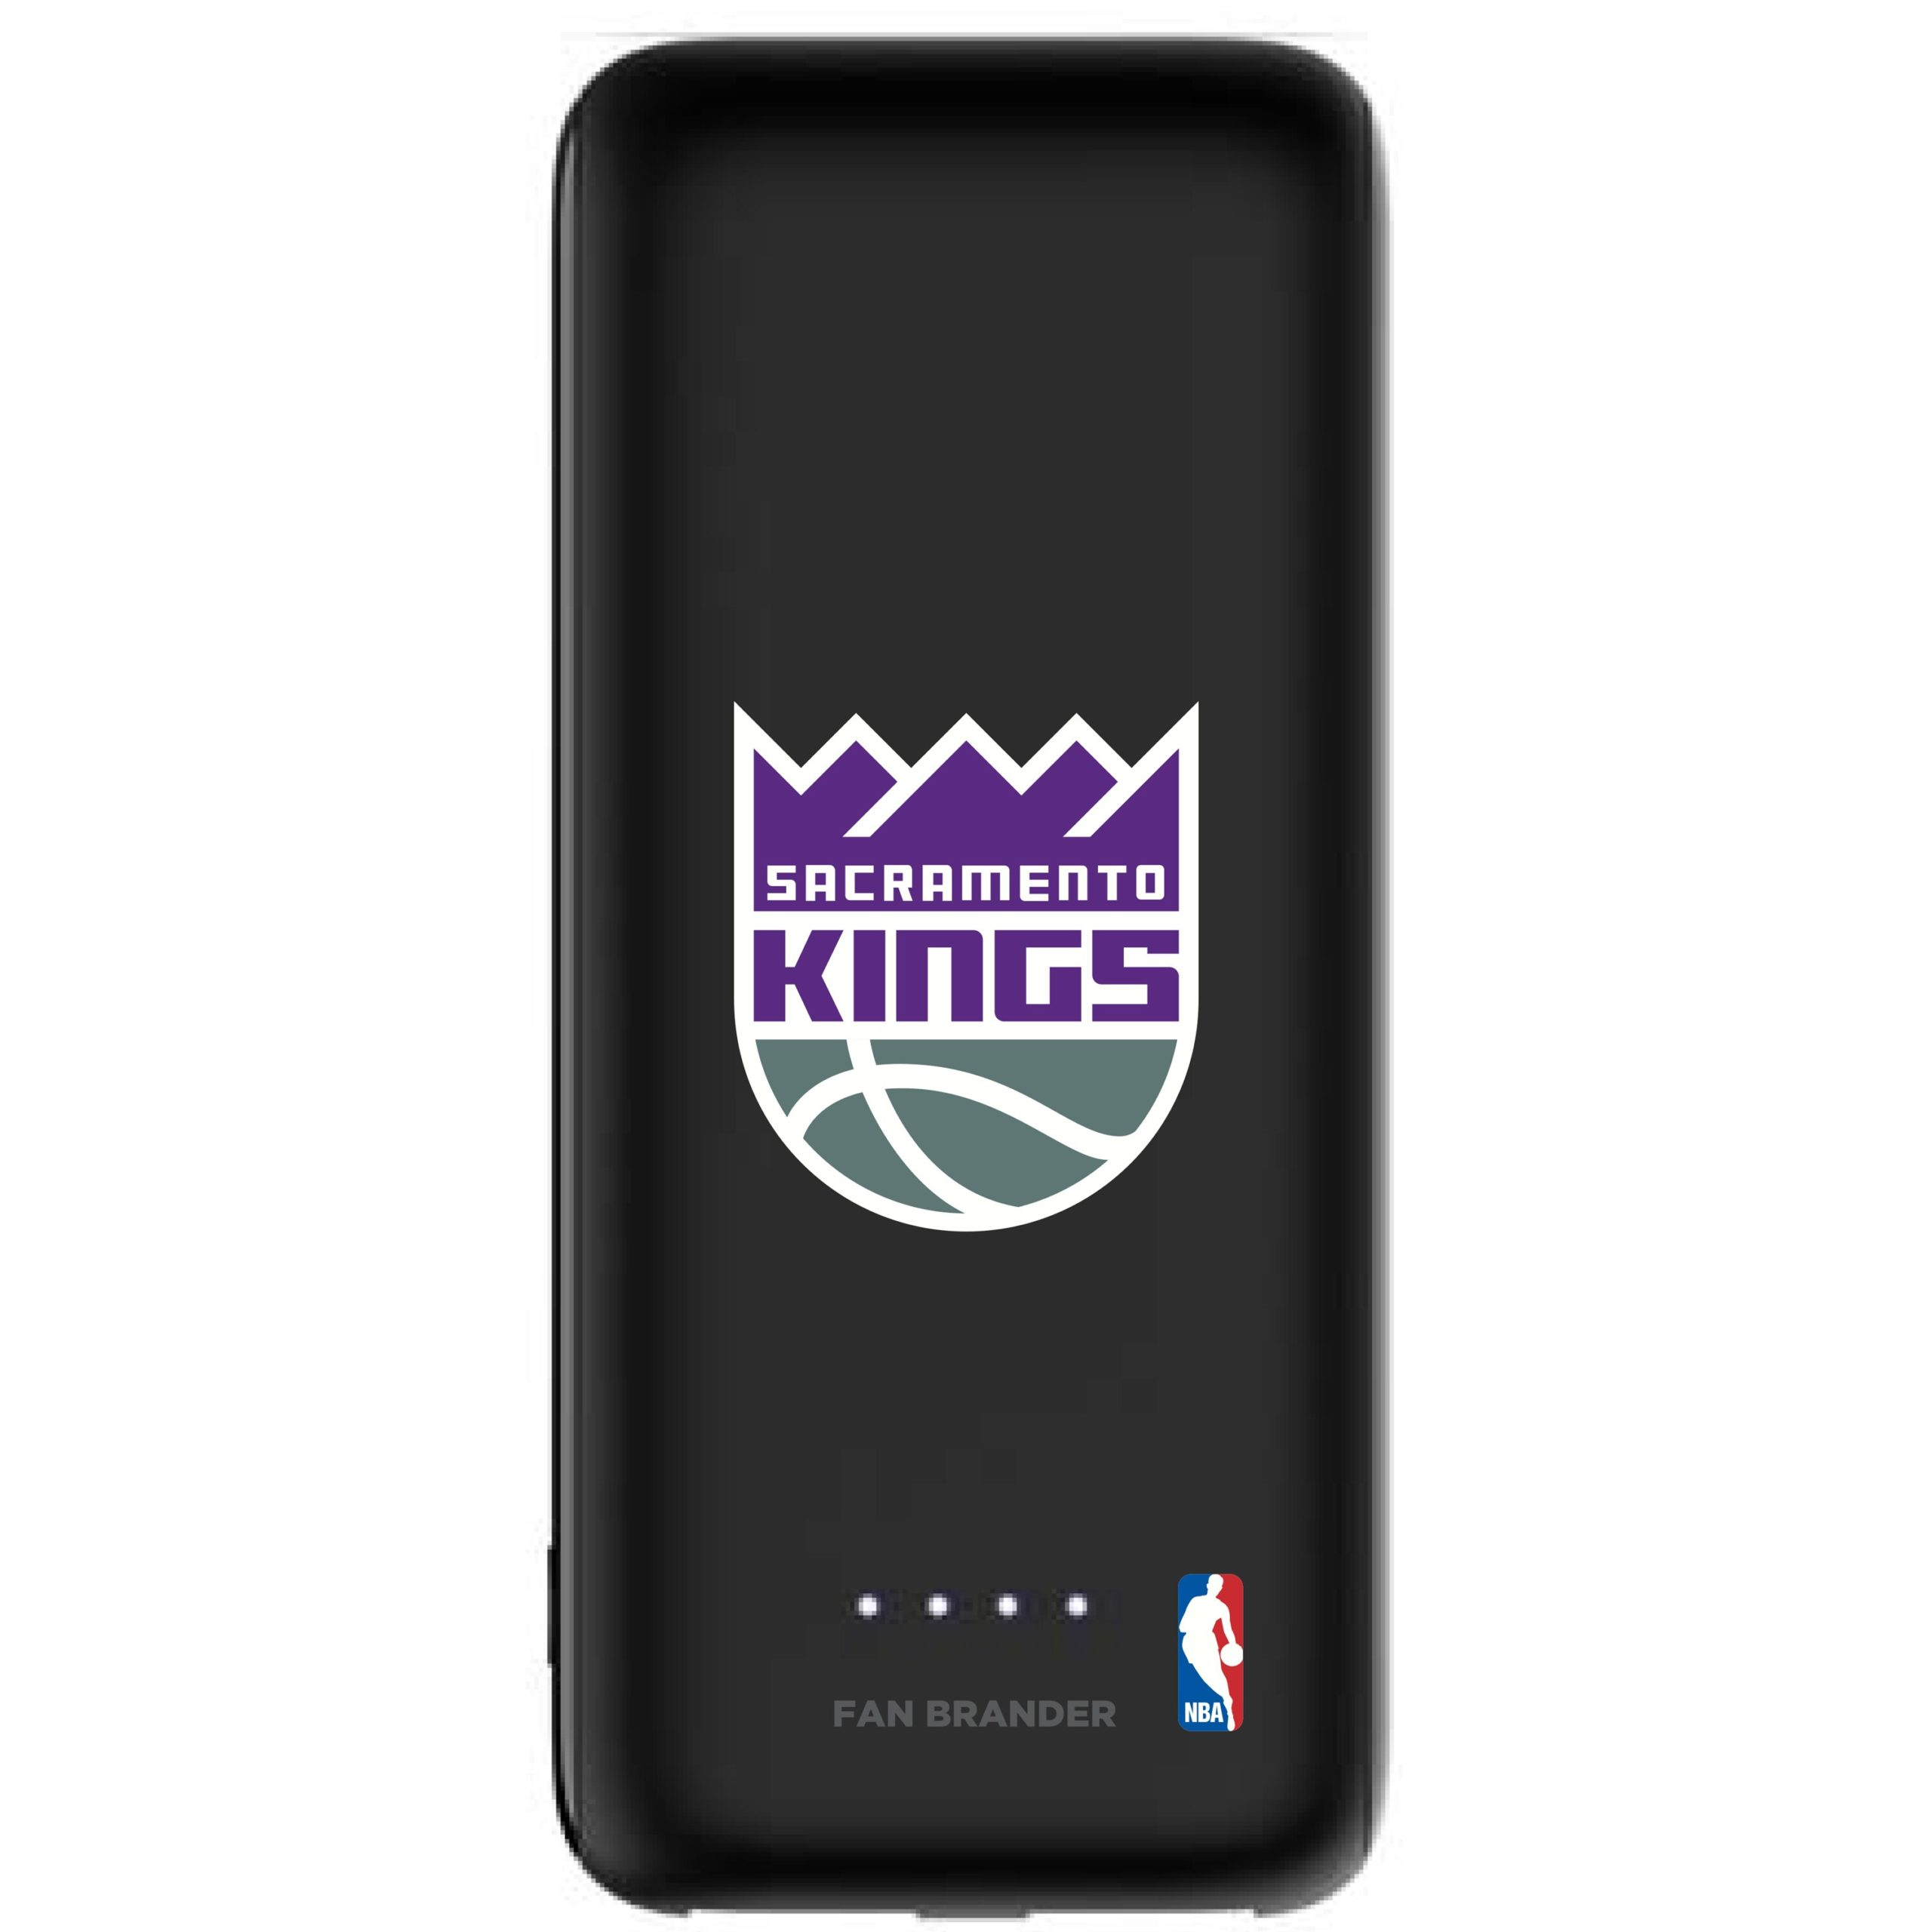 Sacramento Kings mophie 5200 mAh Universal Battery Power Boost